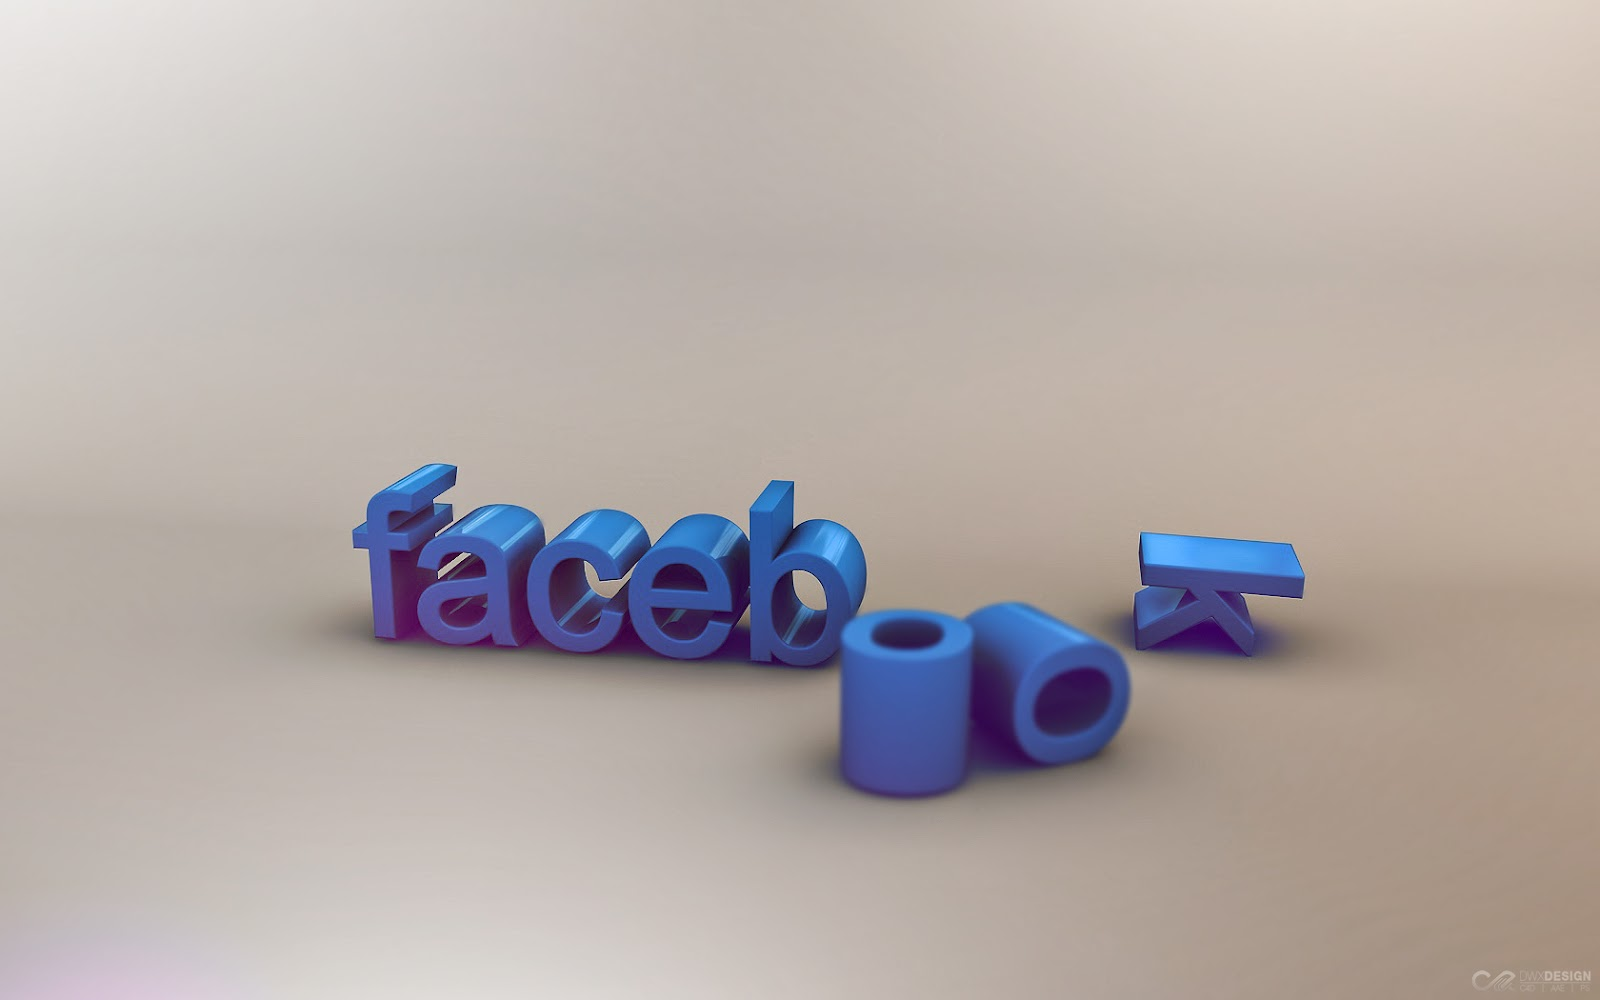 Download 3D Text Name Wallpaper Gallery